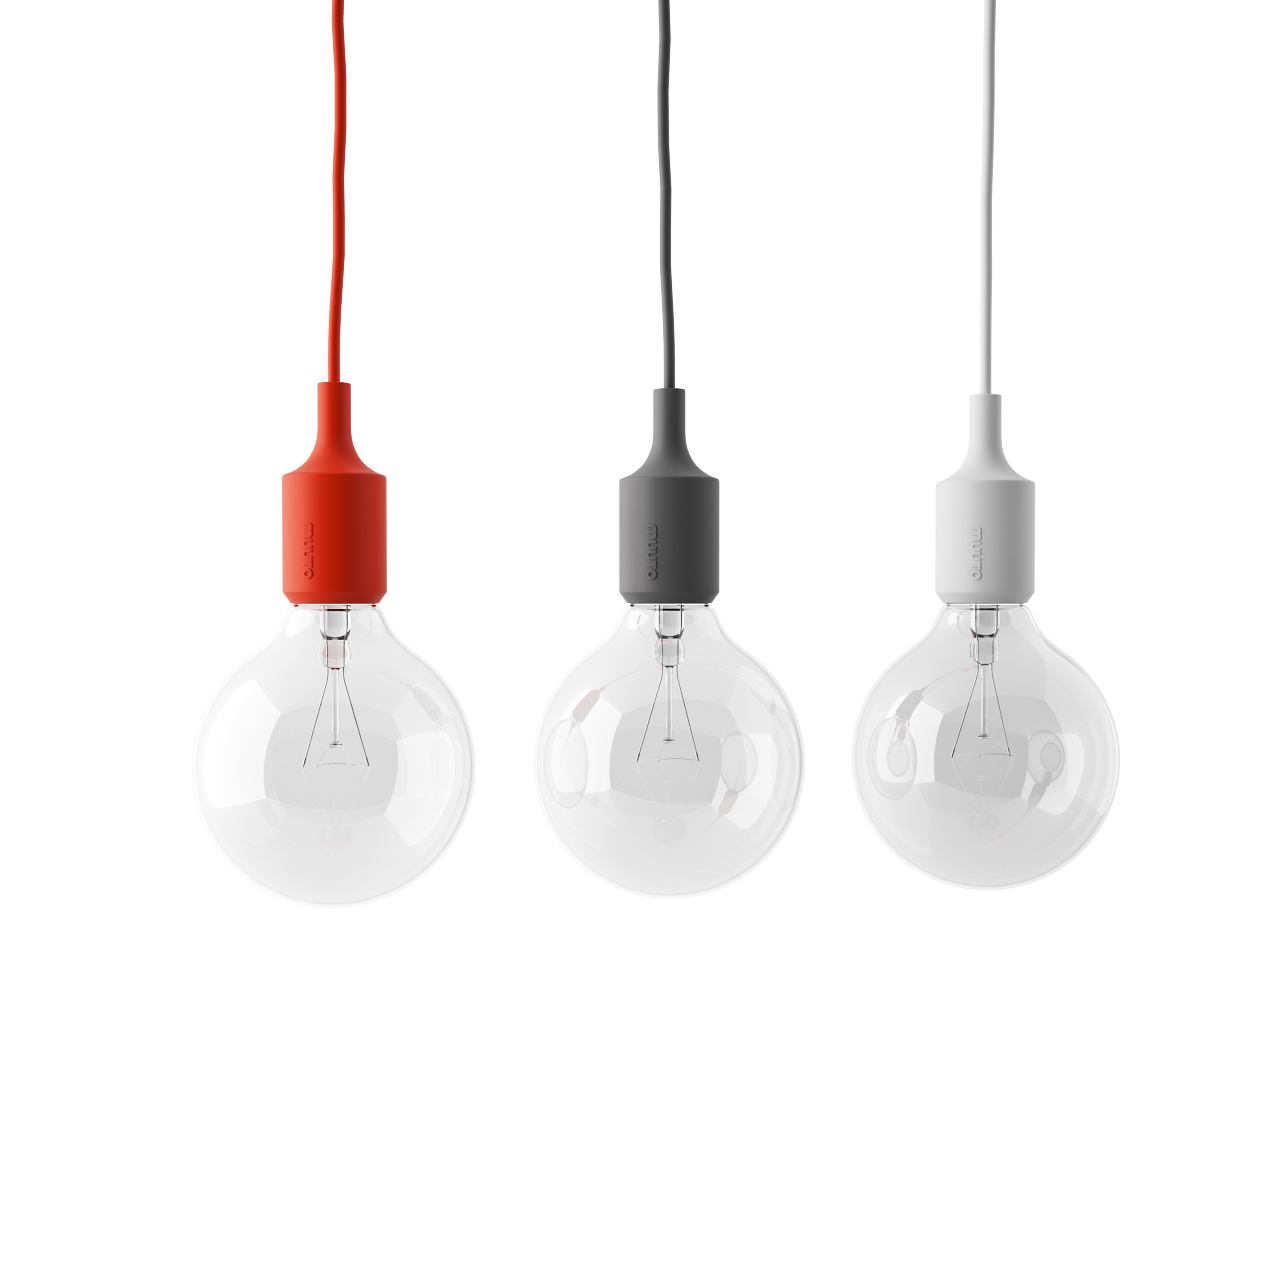 Hanging Ceiling Light 3d Autocad Model: E27 Pendant Lamp By Muuto